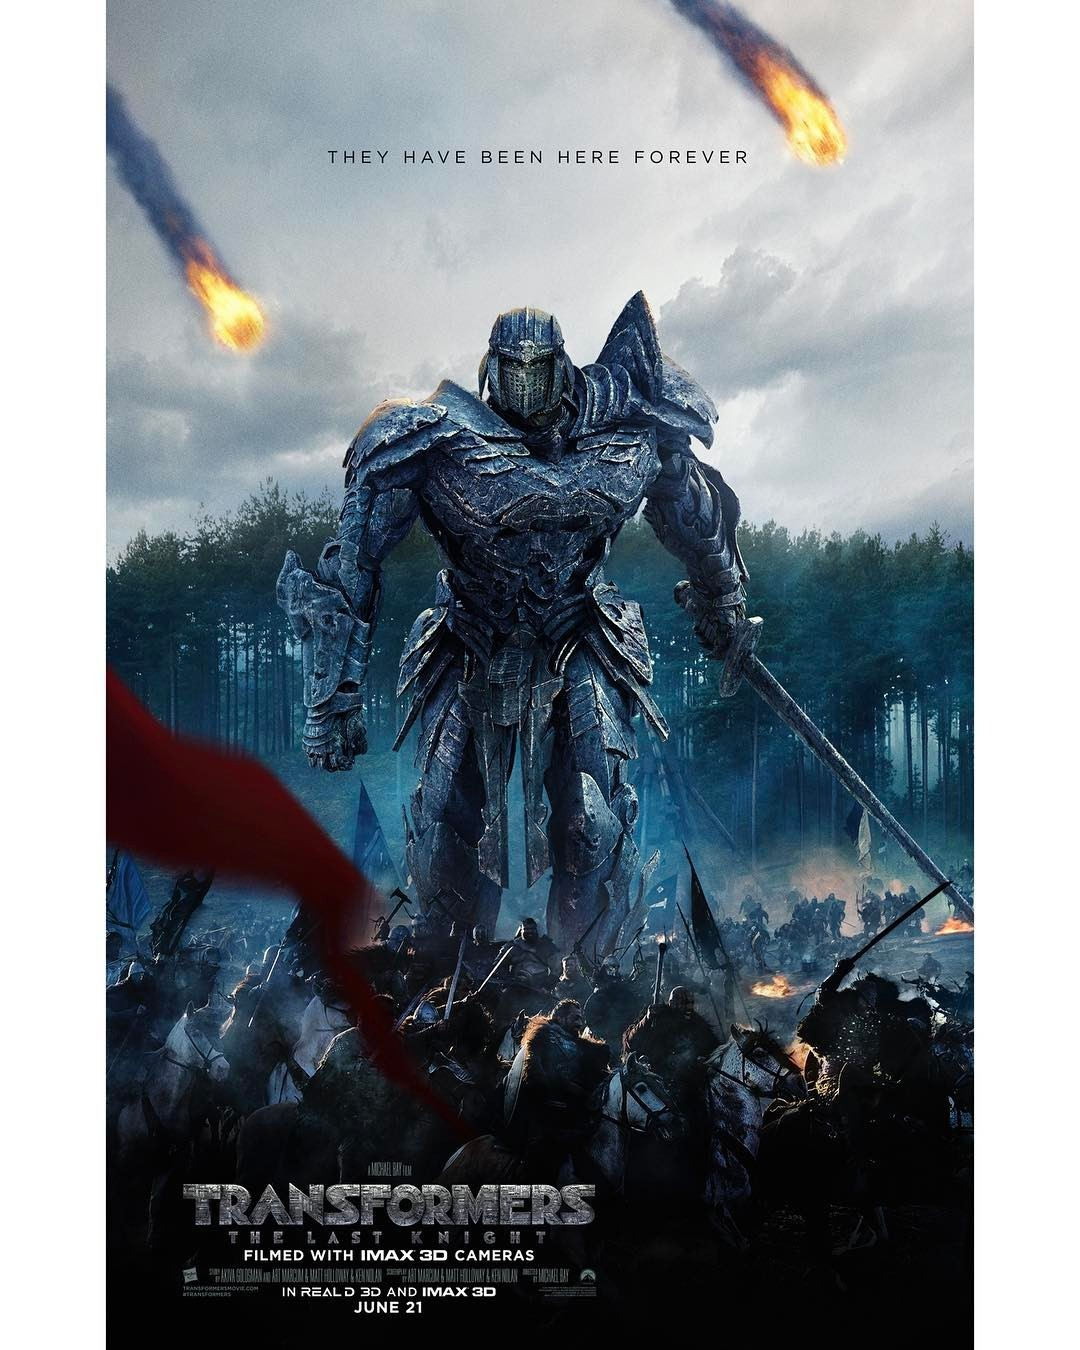 Transformers News: New Poster for Transformers: The Last Knight 'They Have Been Here Forever'